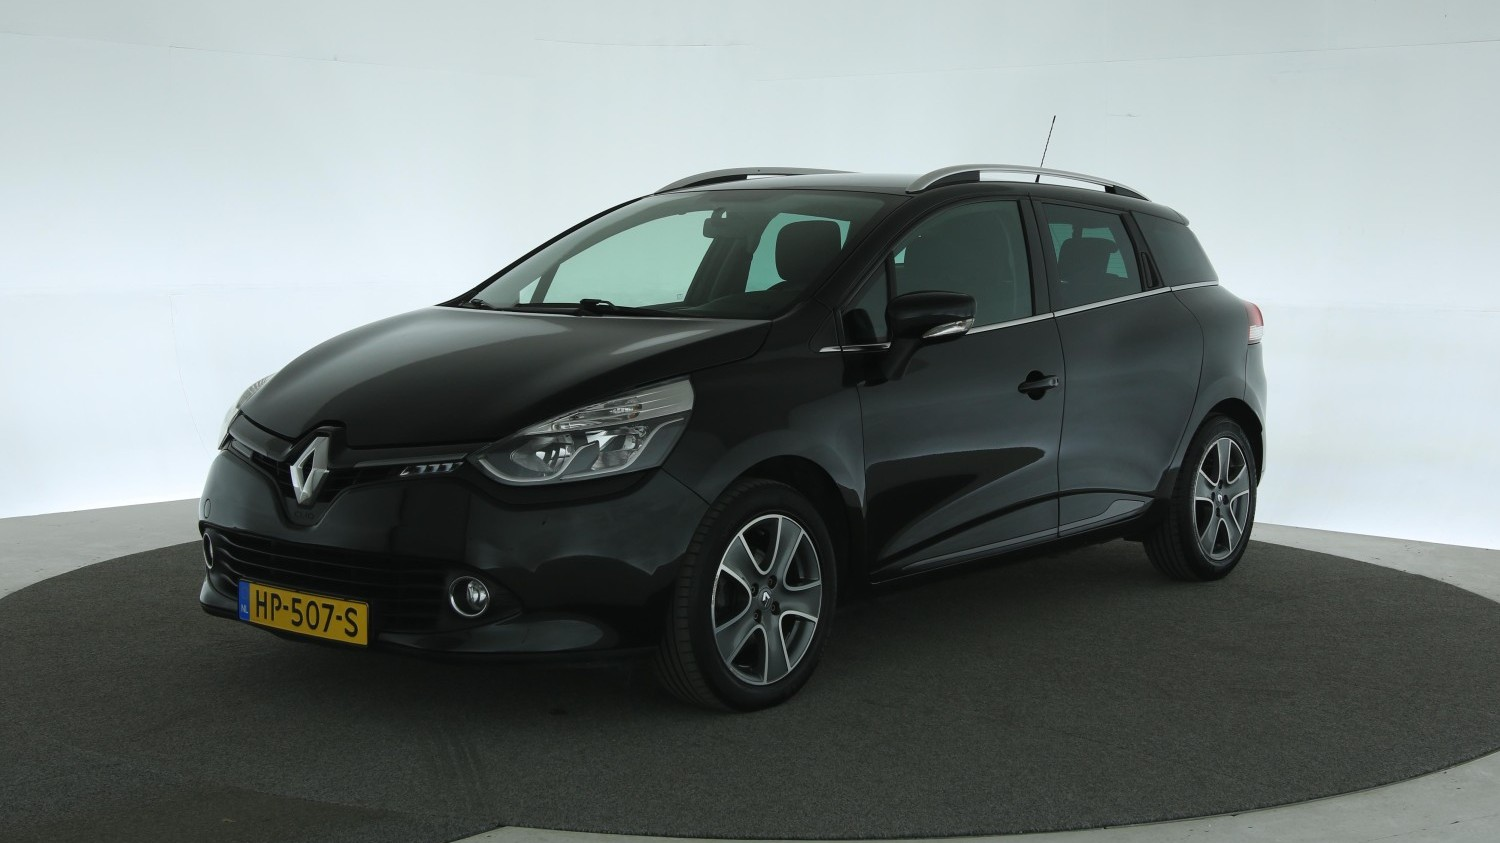 Renault Clio Station 2015 HP-507-S 1